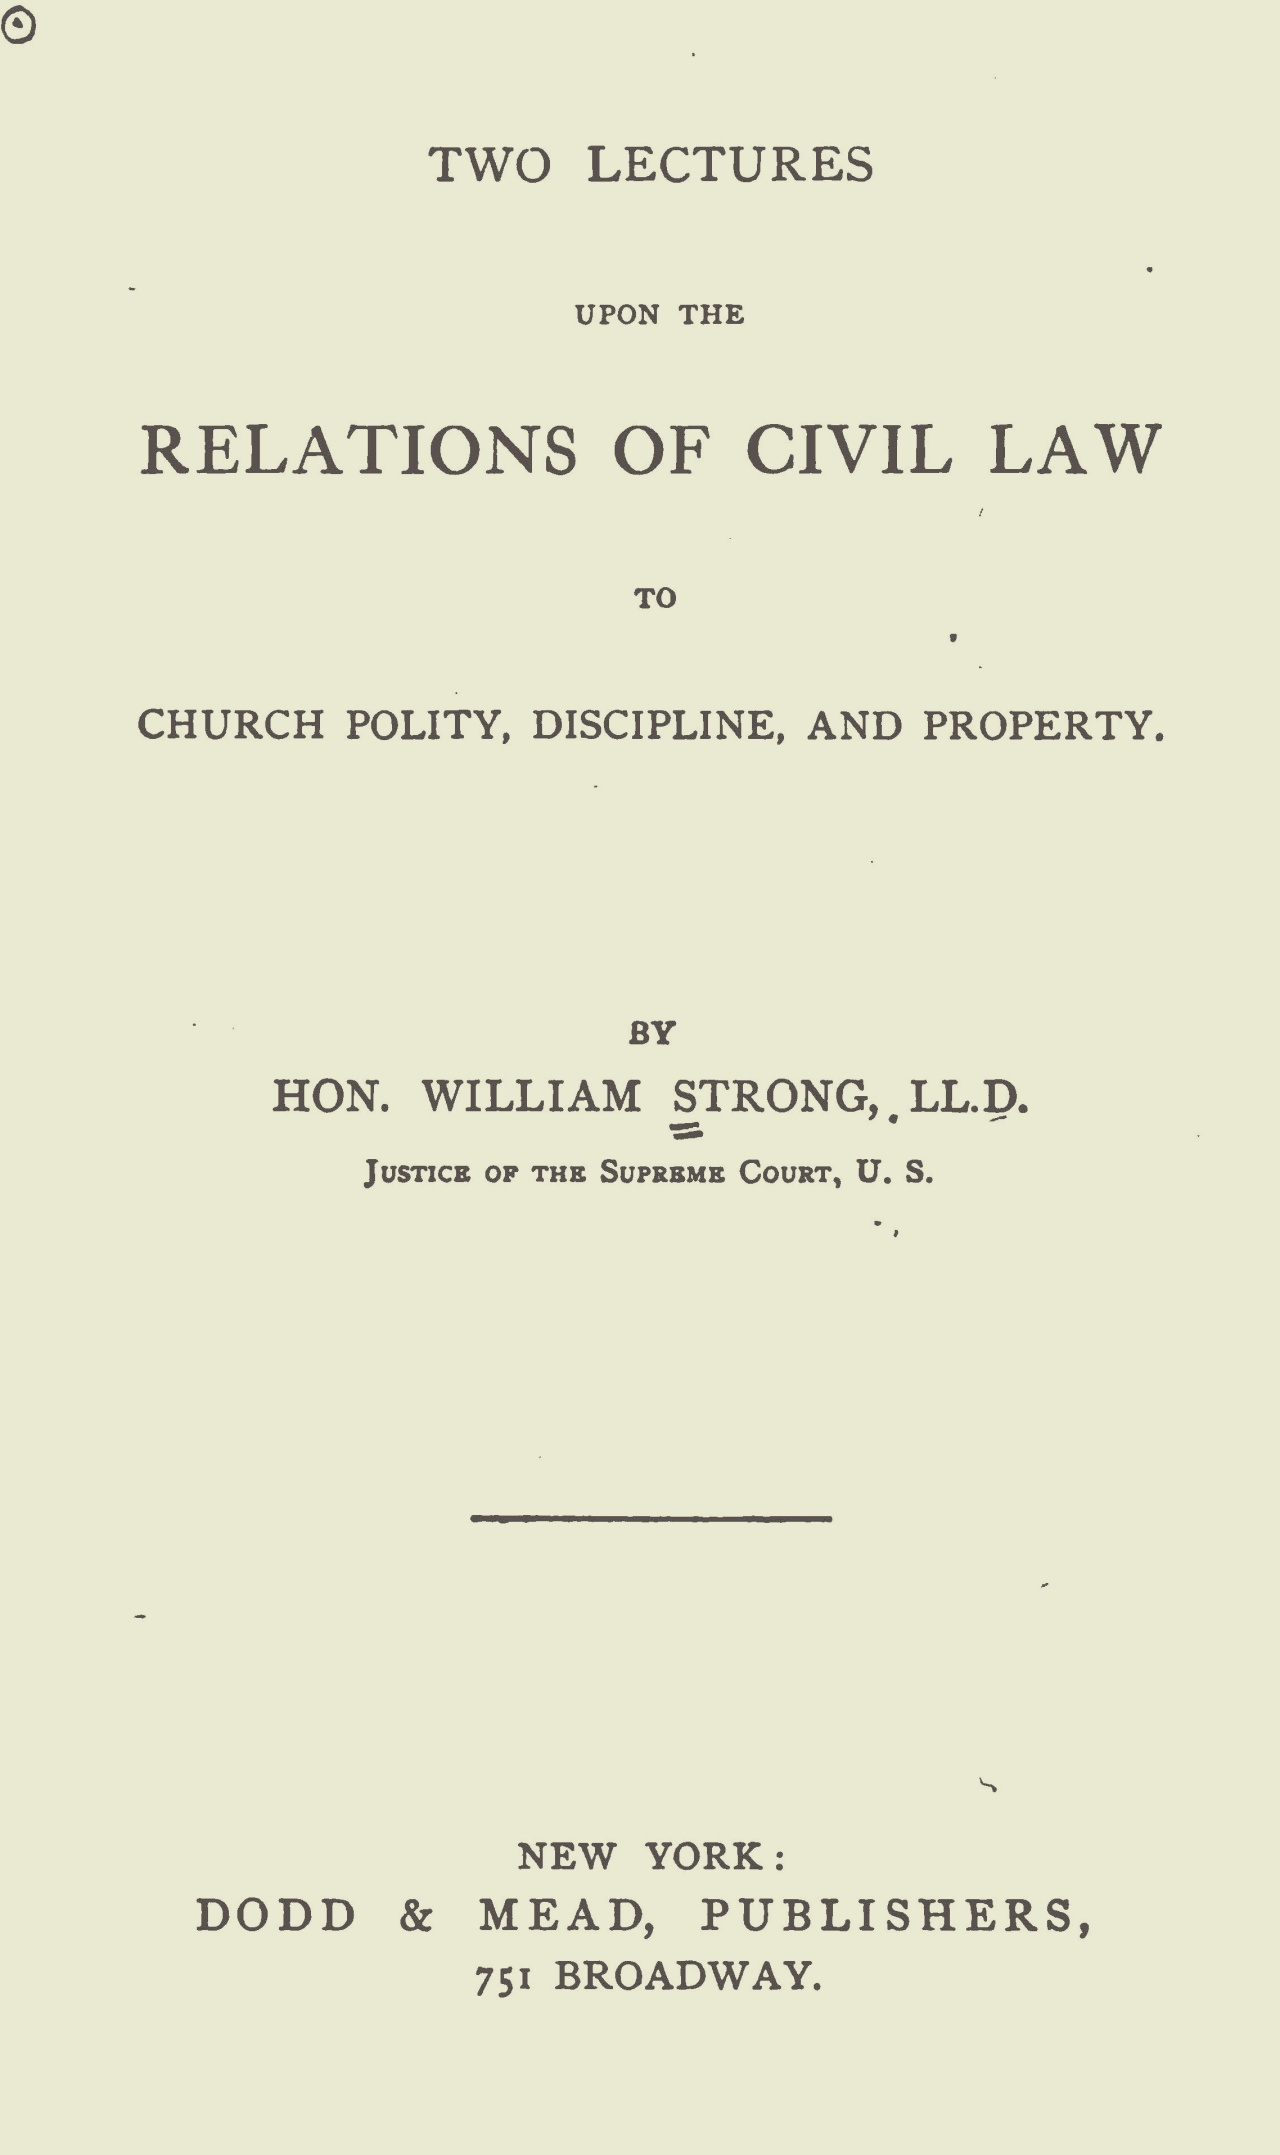 Strong, William, Two Lectures Upon the Relation of Civil Law to Church Polity, Discipline, and Property Title Page.jpg